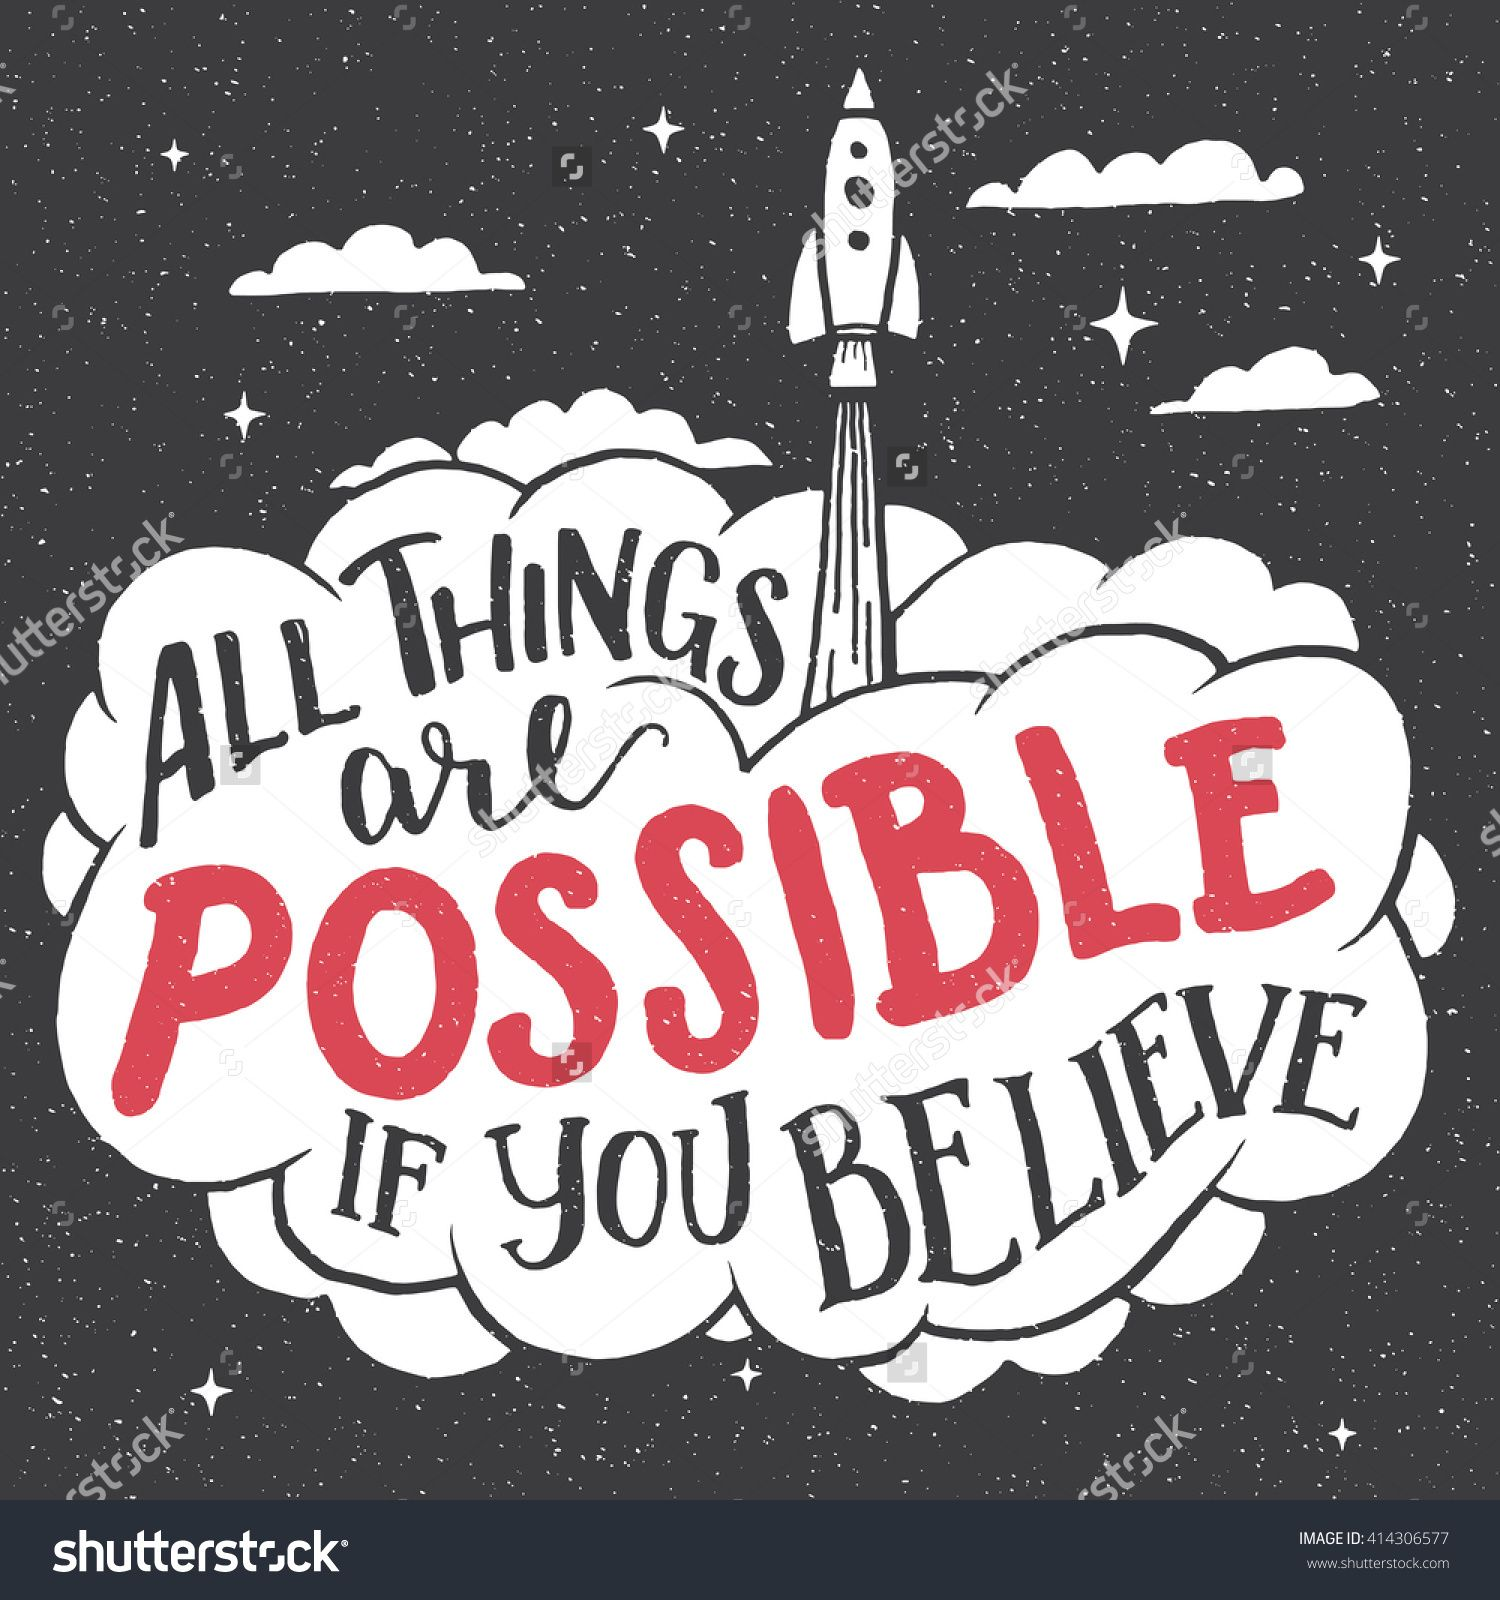 All Things Are Possible If You Believe. Inspirational Hand ...